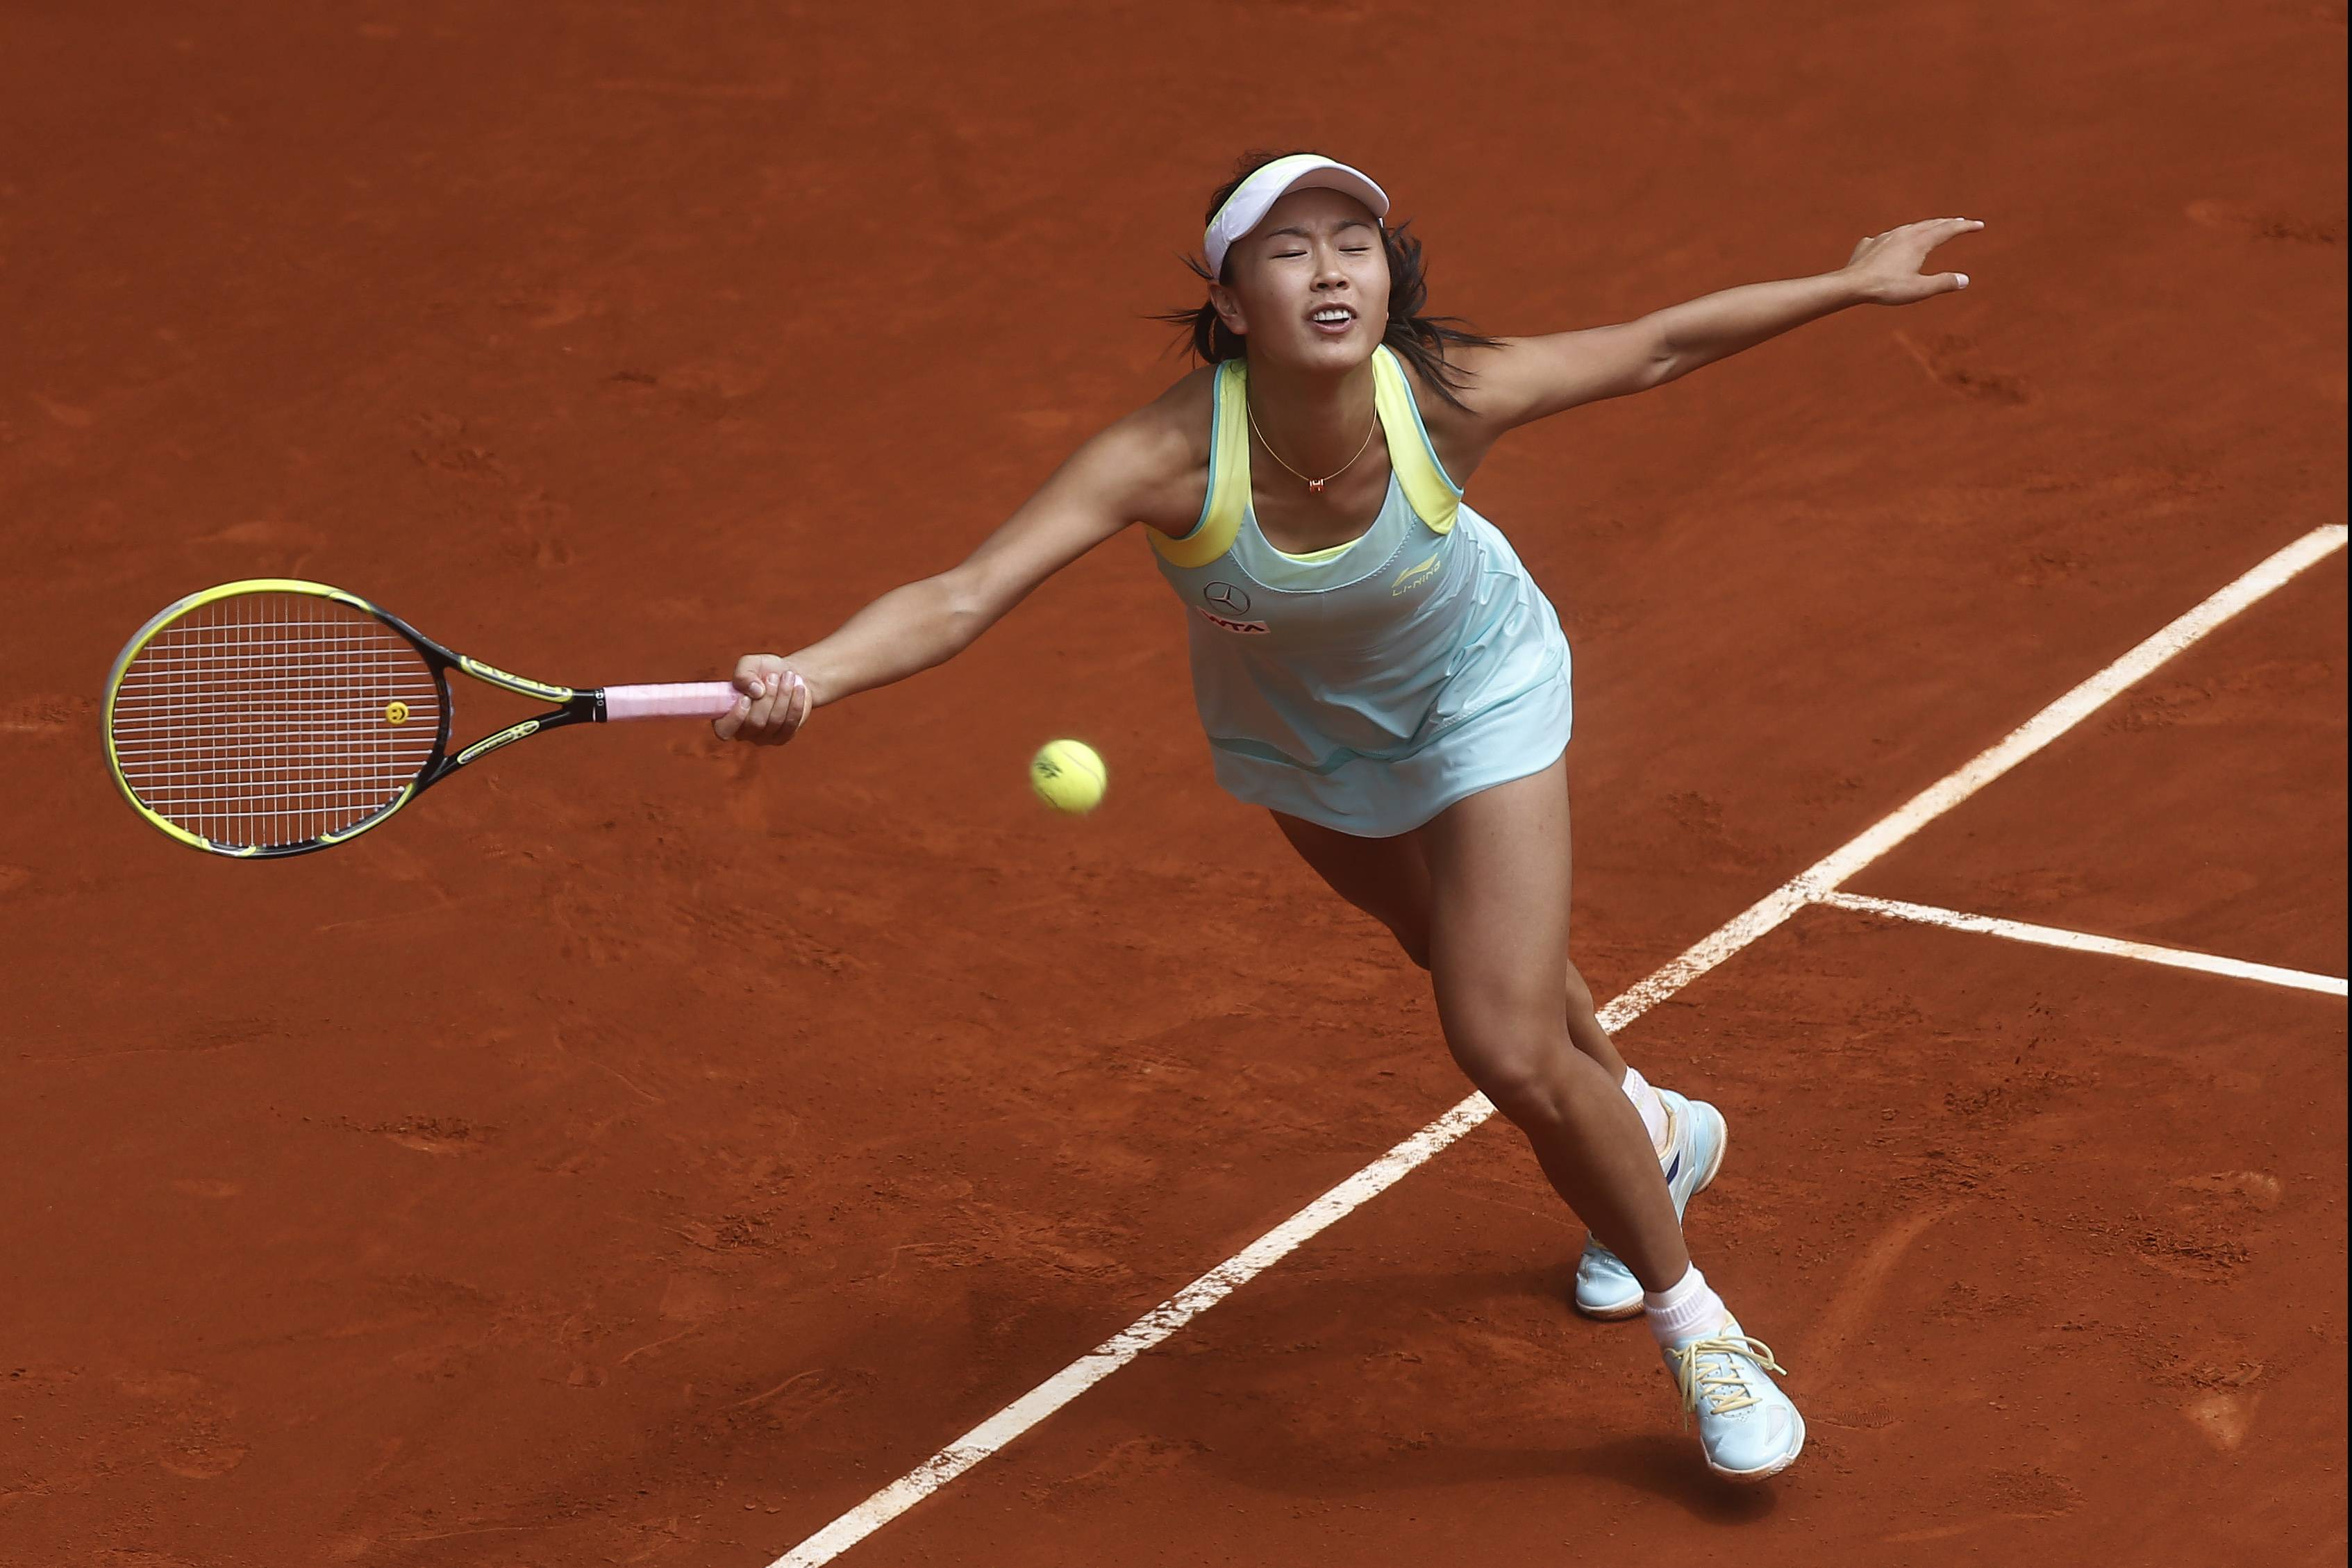 Shuai Peng from China fails to return the ball during a Madrid Open tennis tournament match against Serena Williams from U.S., in Madrid, Spain, Wednesday, May 7, 2014.